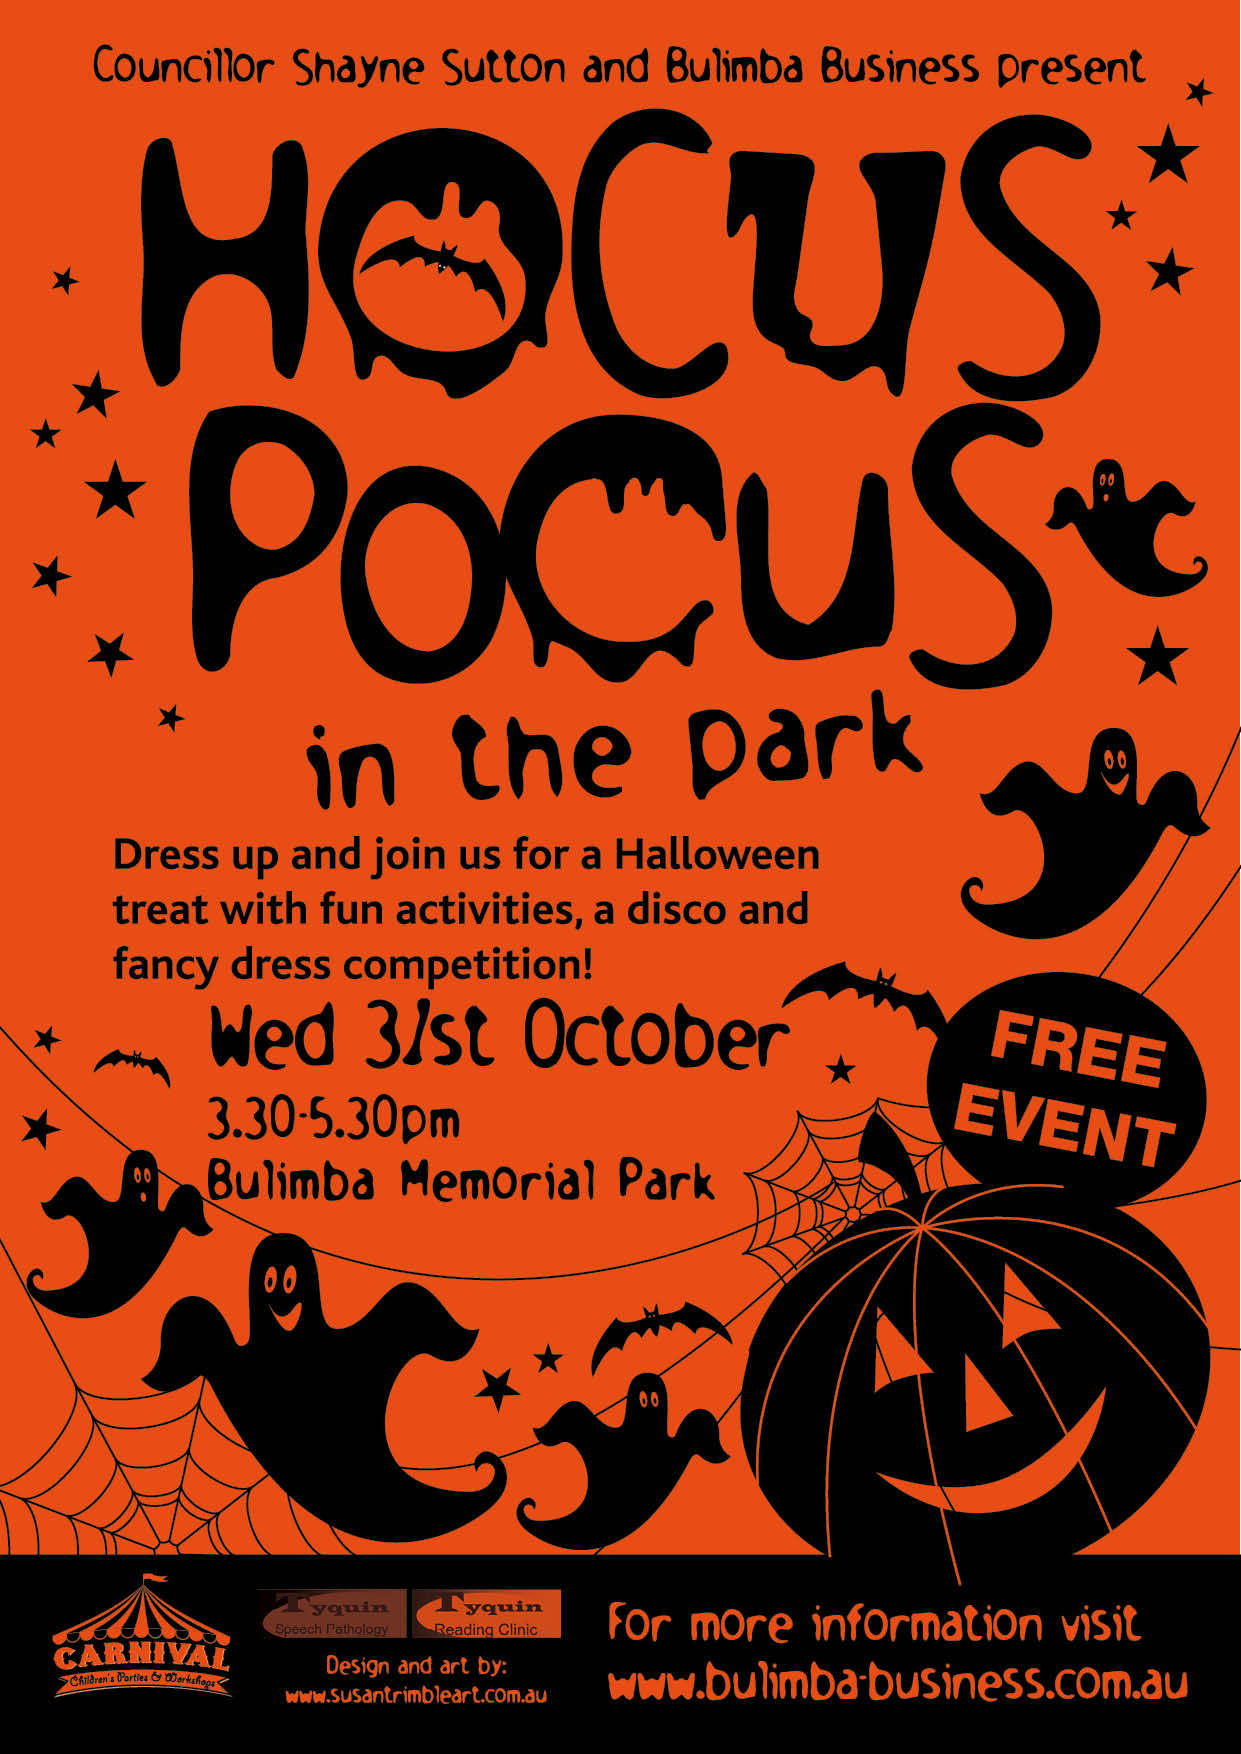 Hocus Pocus in the Park - Brisbane